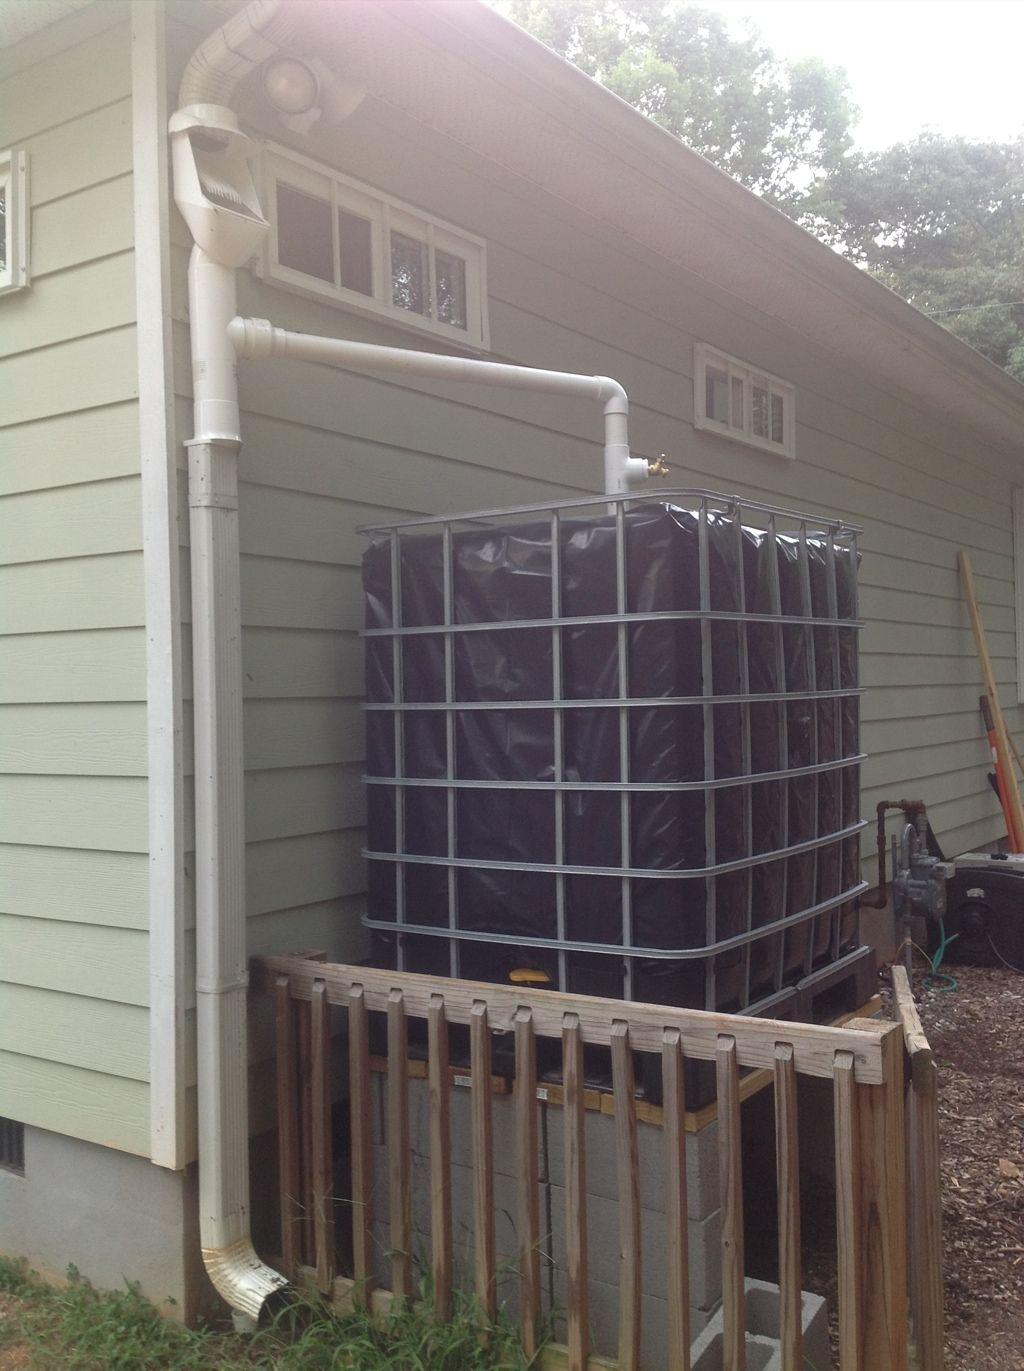 Rain Harvesting Setup Completed 2 300 Gallon Capacity Rain Harvesting Rain Water Collection System Rain Water Collection